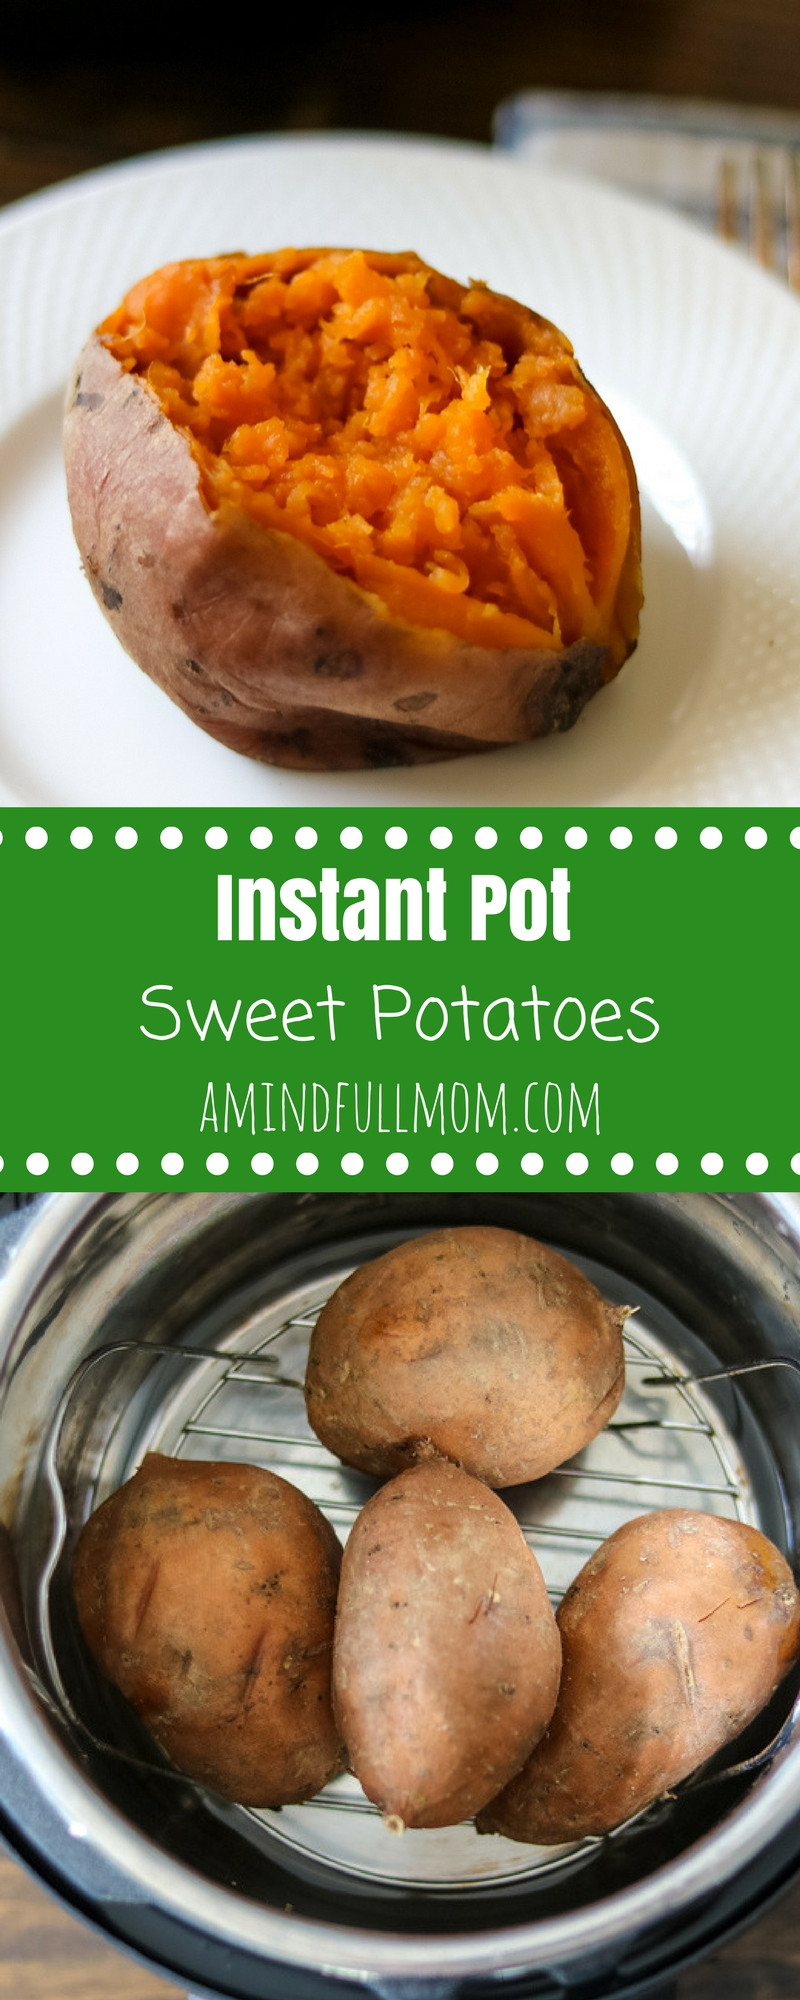 Instant Pot Baked Sweet Potato  How to Cook Sweet Potatoes in Instant Pot Step by step